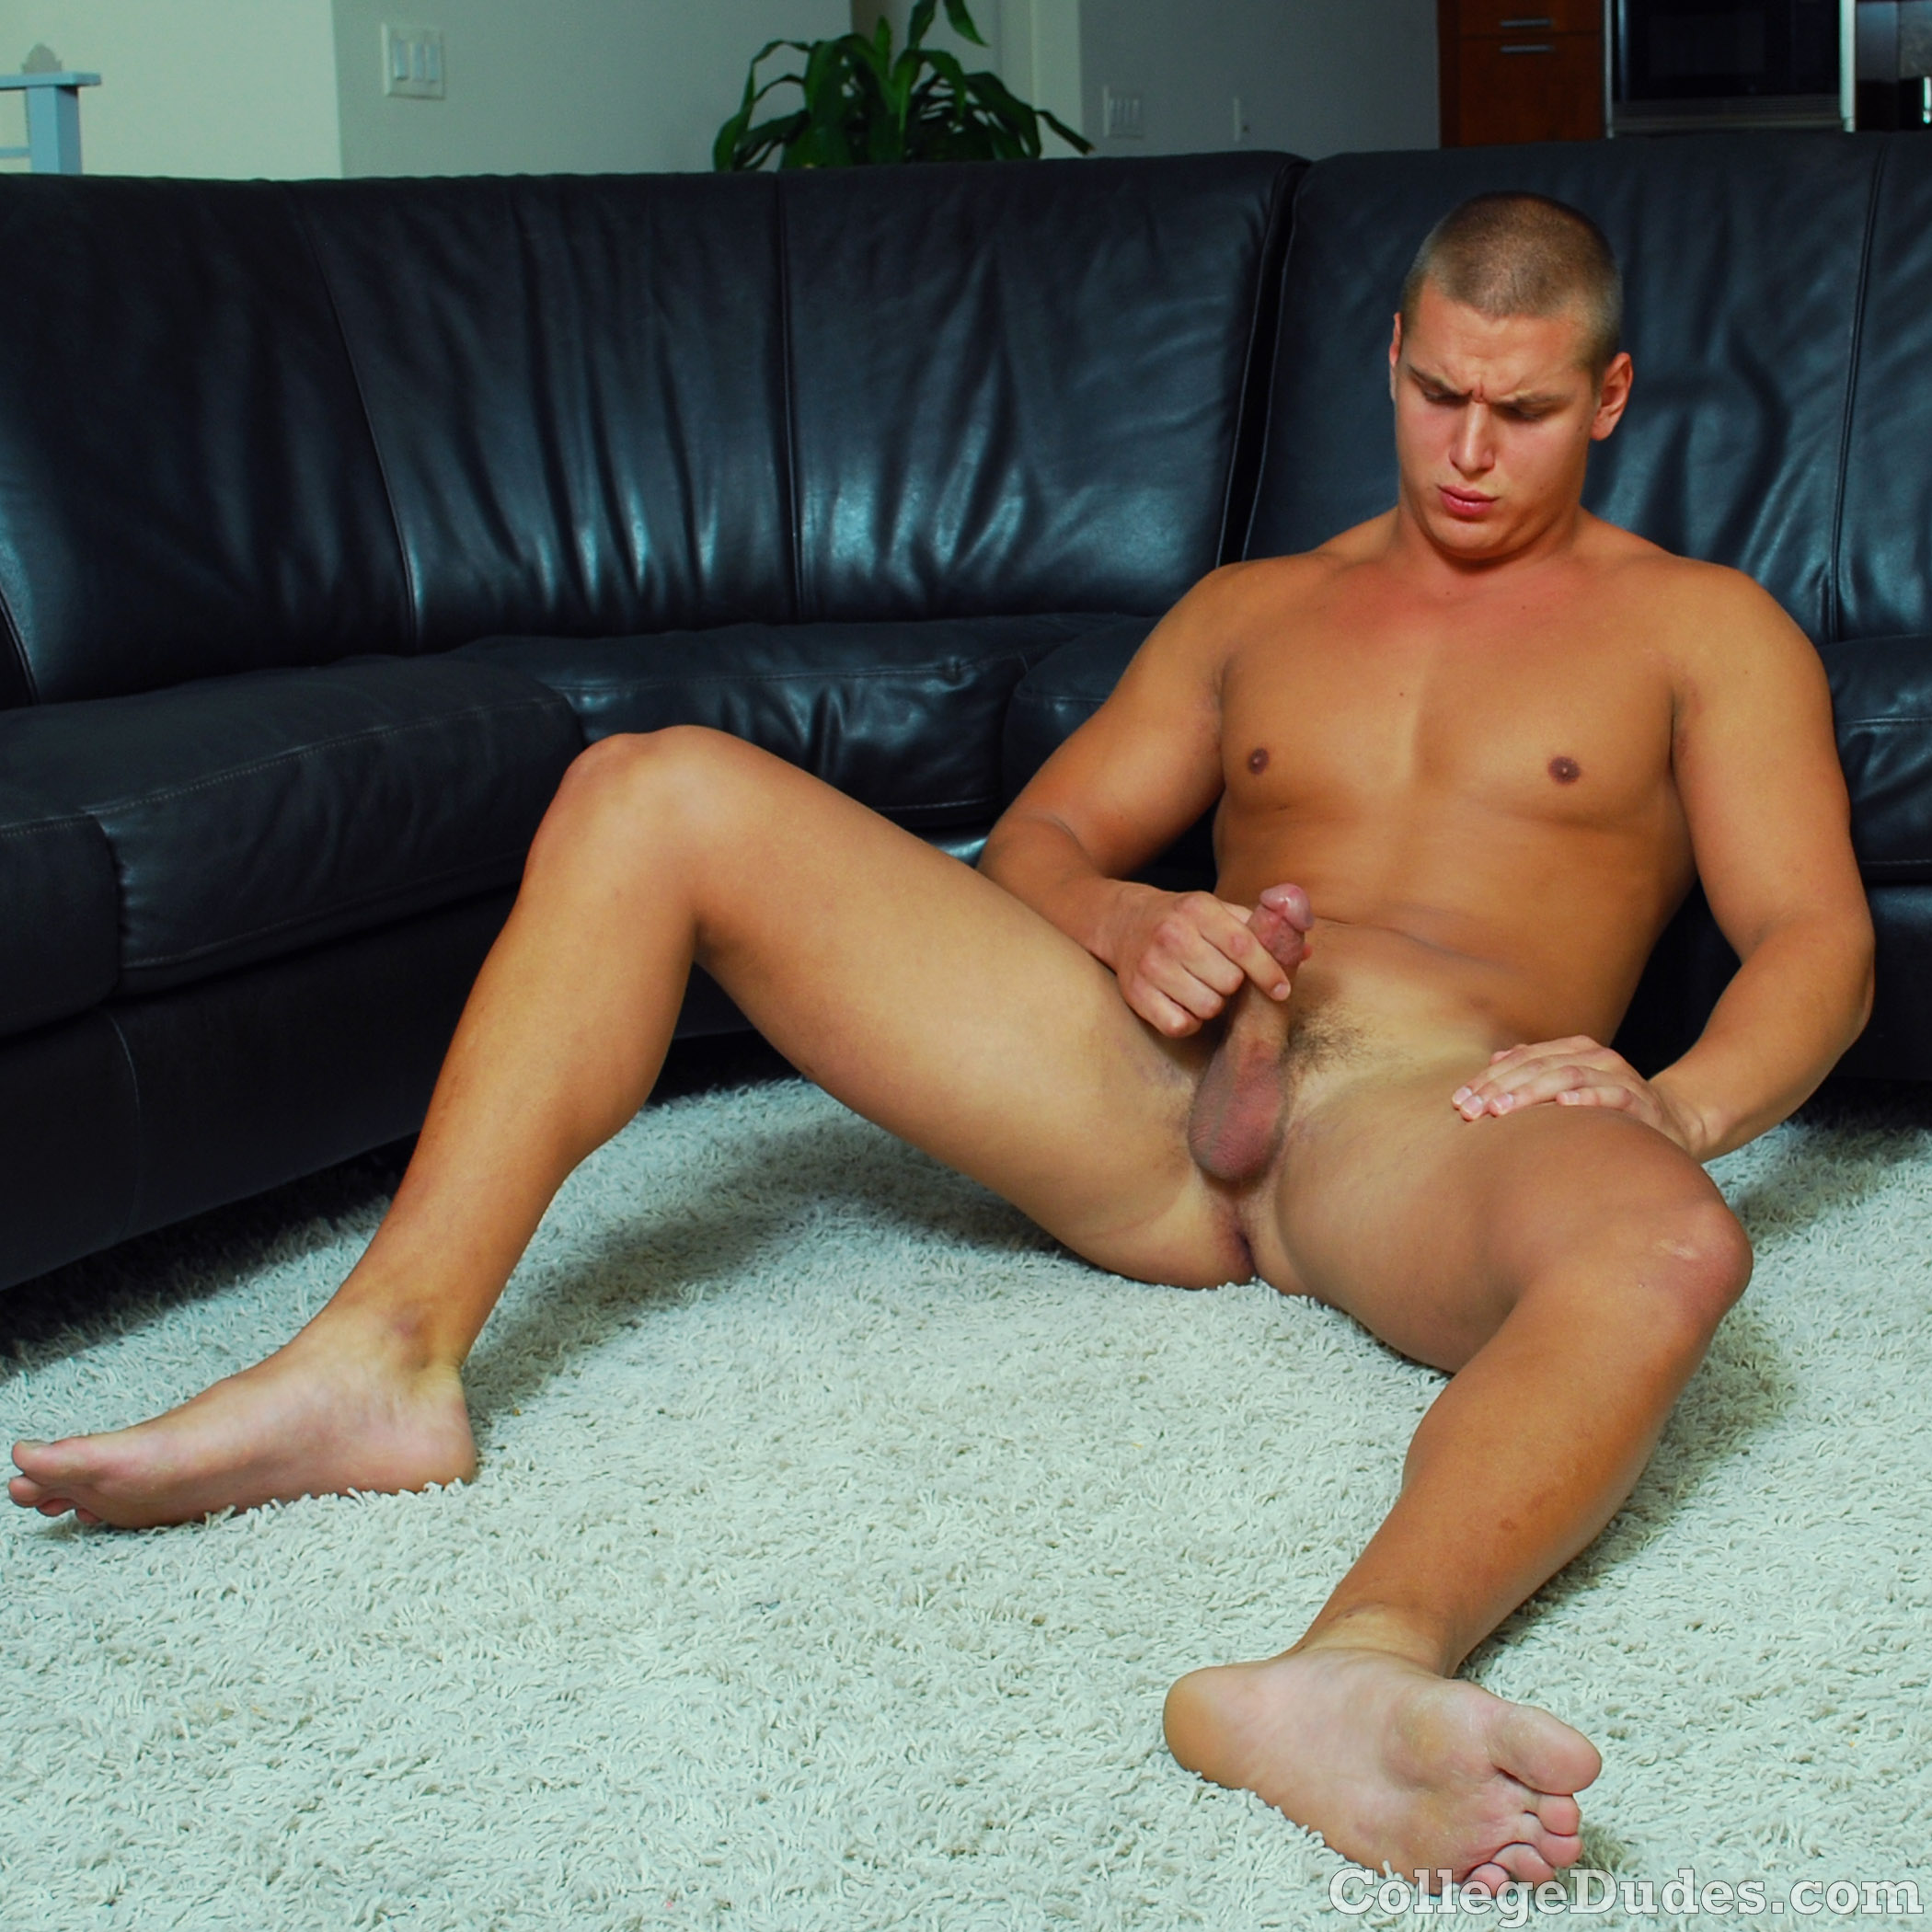 Mike Young Amateur Straight Collegedudes Naked Jacking Off